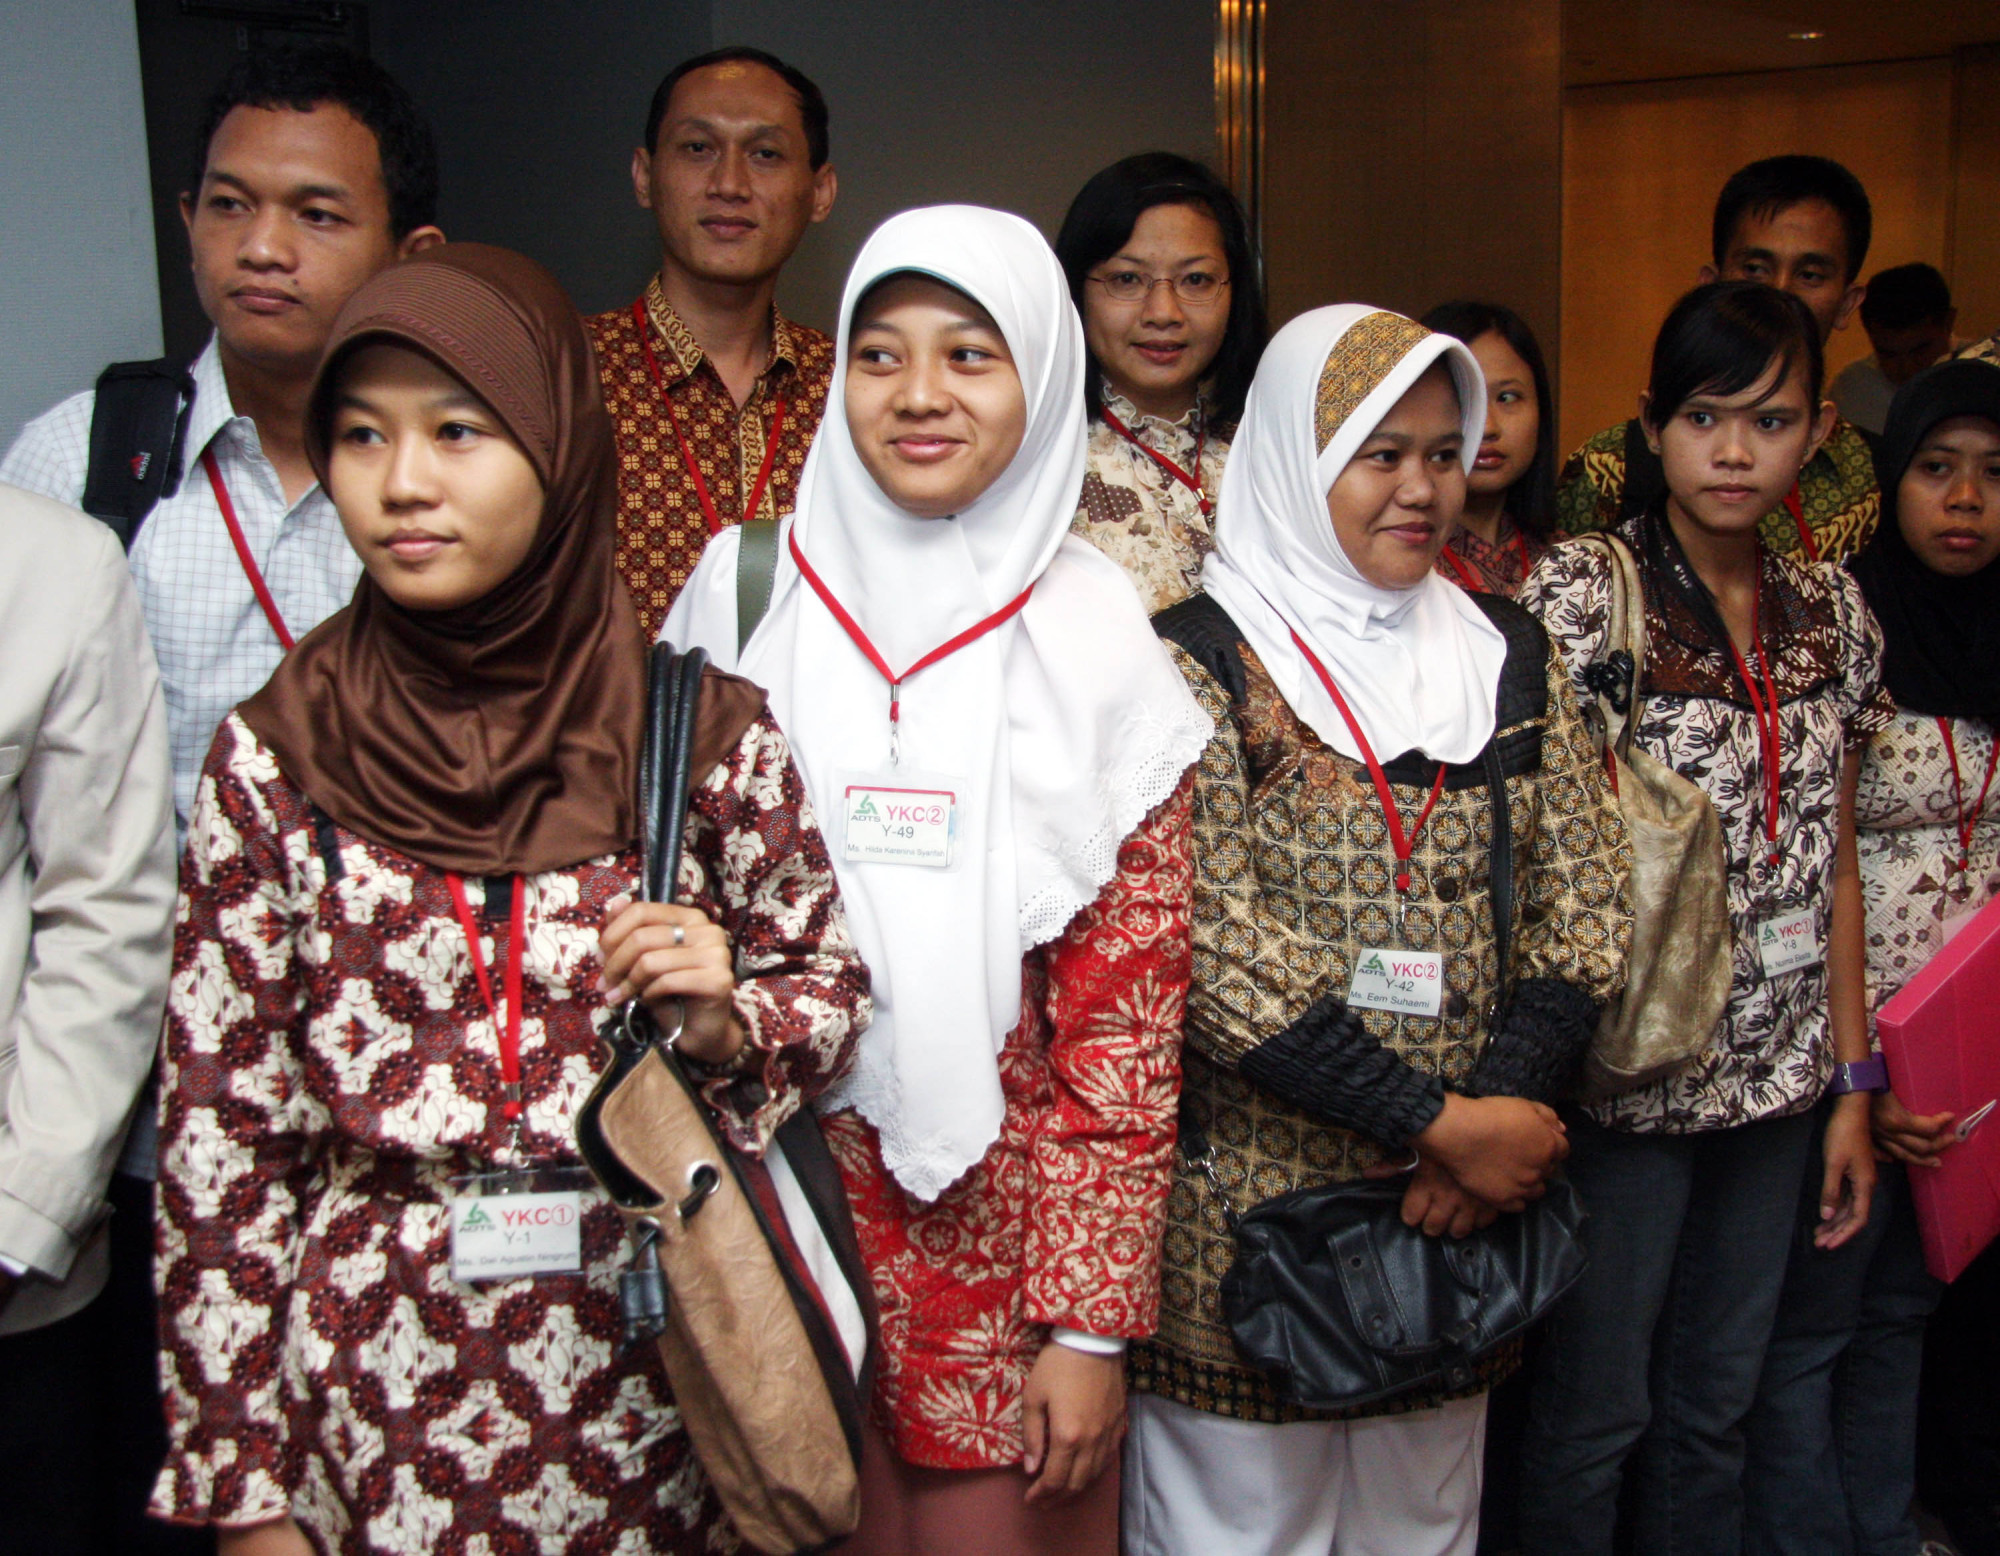 Indonesian nursing interns arrive at an opening ceremony for a Japanese school in Tokyo in August 2008. A survey published Tuesday has revealed that 59 percent of the public think immigrants make the country stronger because of their work and talents. | BLOOMBERG